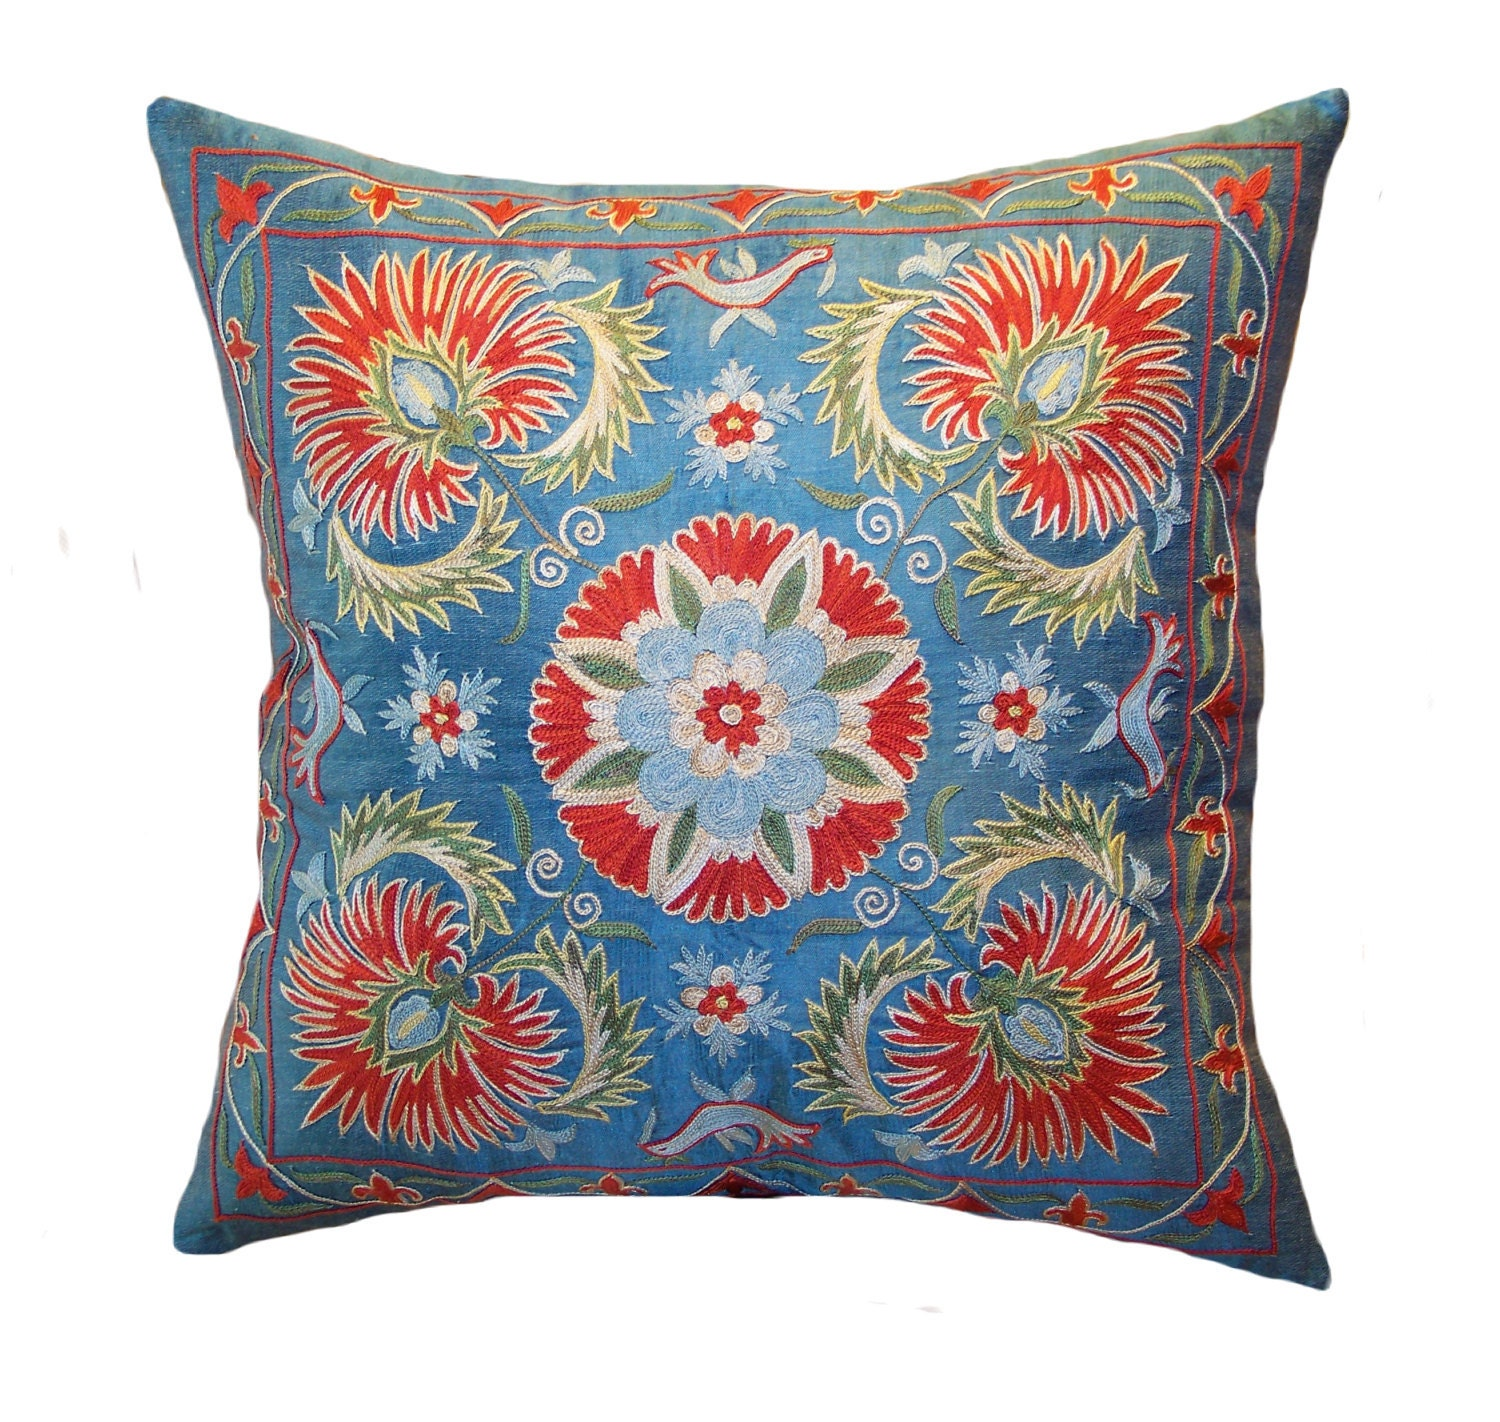 handmade pillows handmade suzani pillow cover emp9 21 suzani pillow uzbek 9323